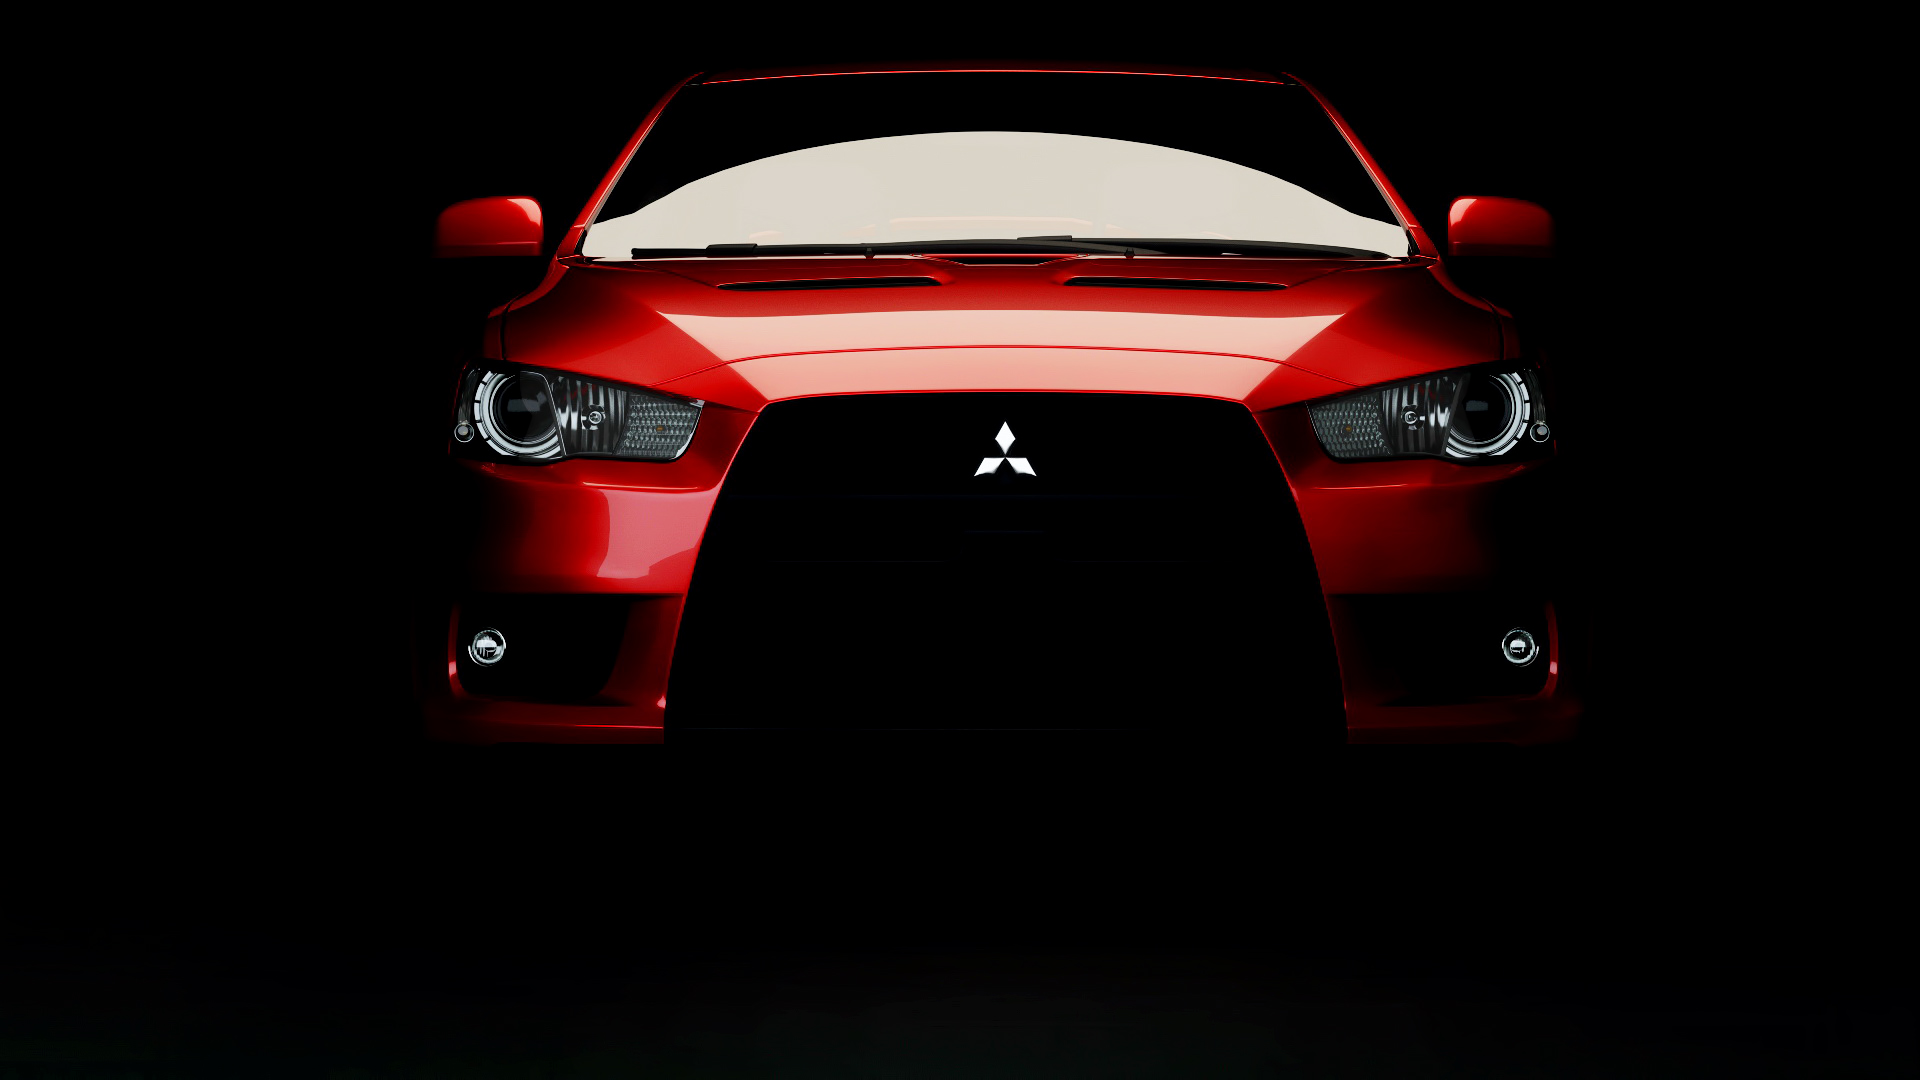 Mitsubishi Lancer EVO X - Studio For COVER by DutaAV on DeviantArt